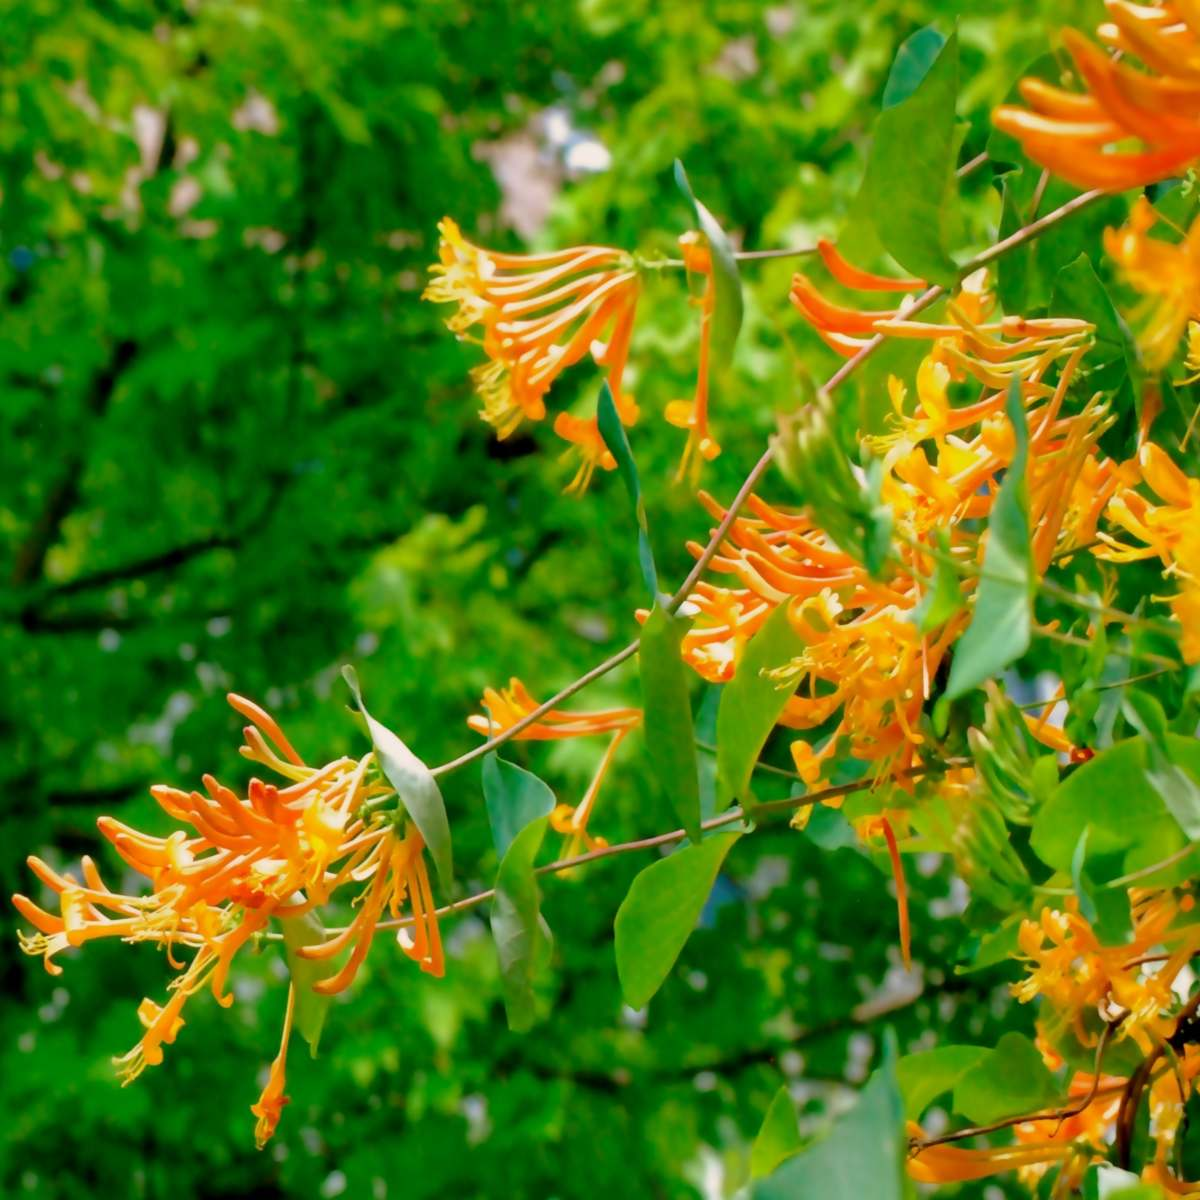 Orange-yellow honeysuckle, a fragrant climbing vine